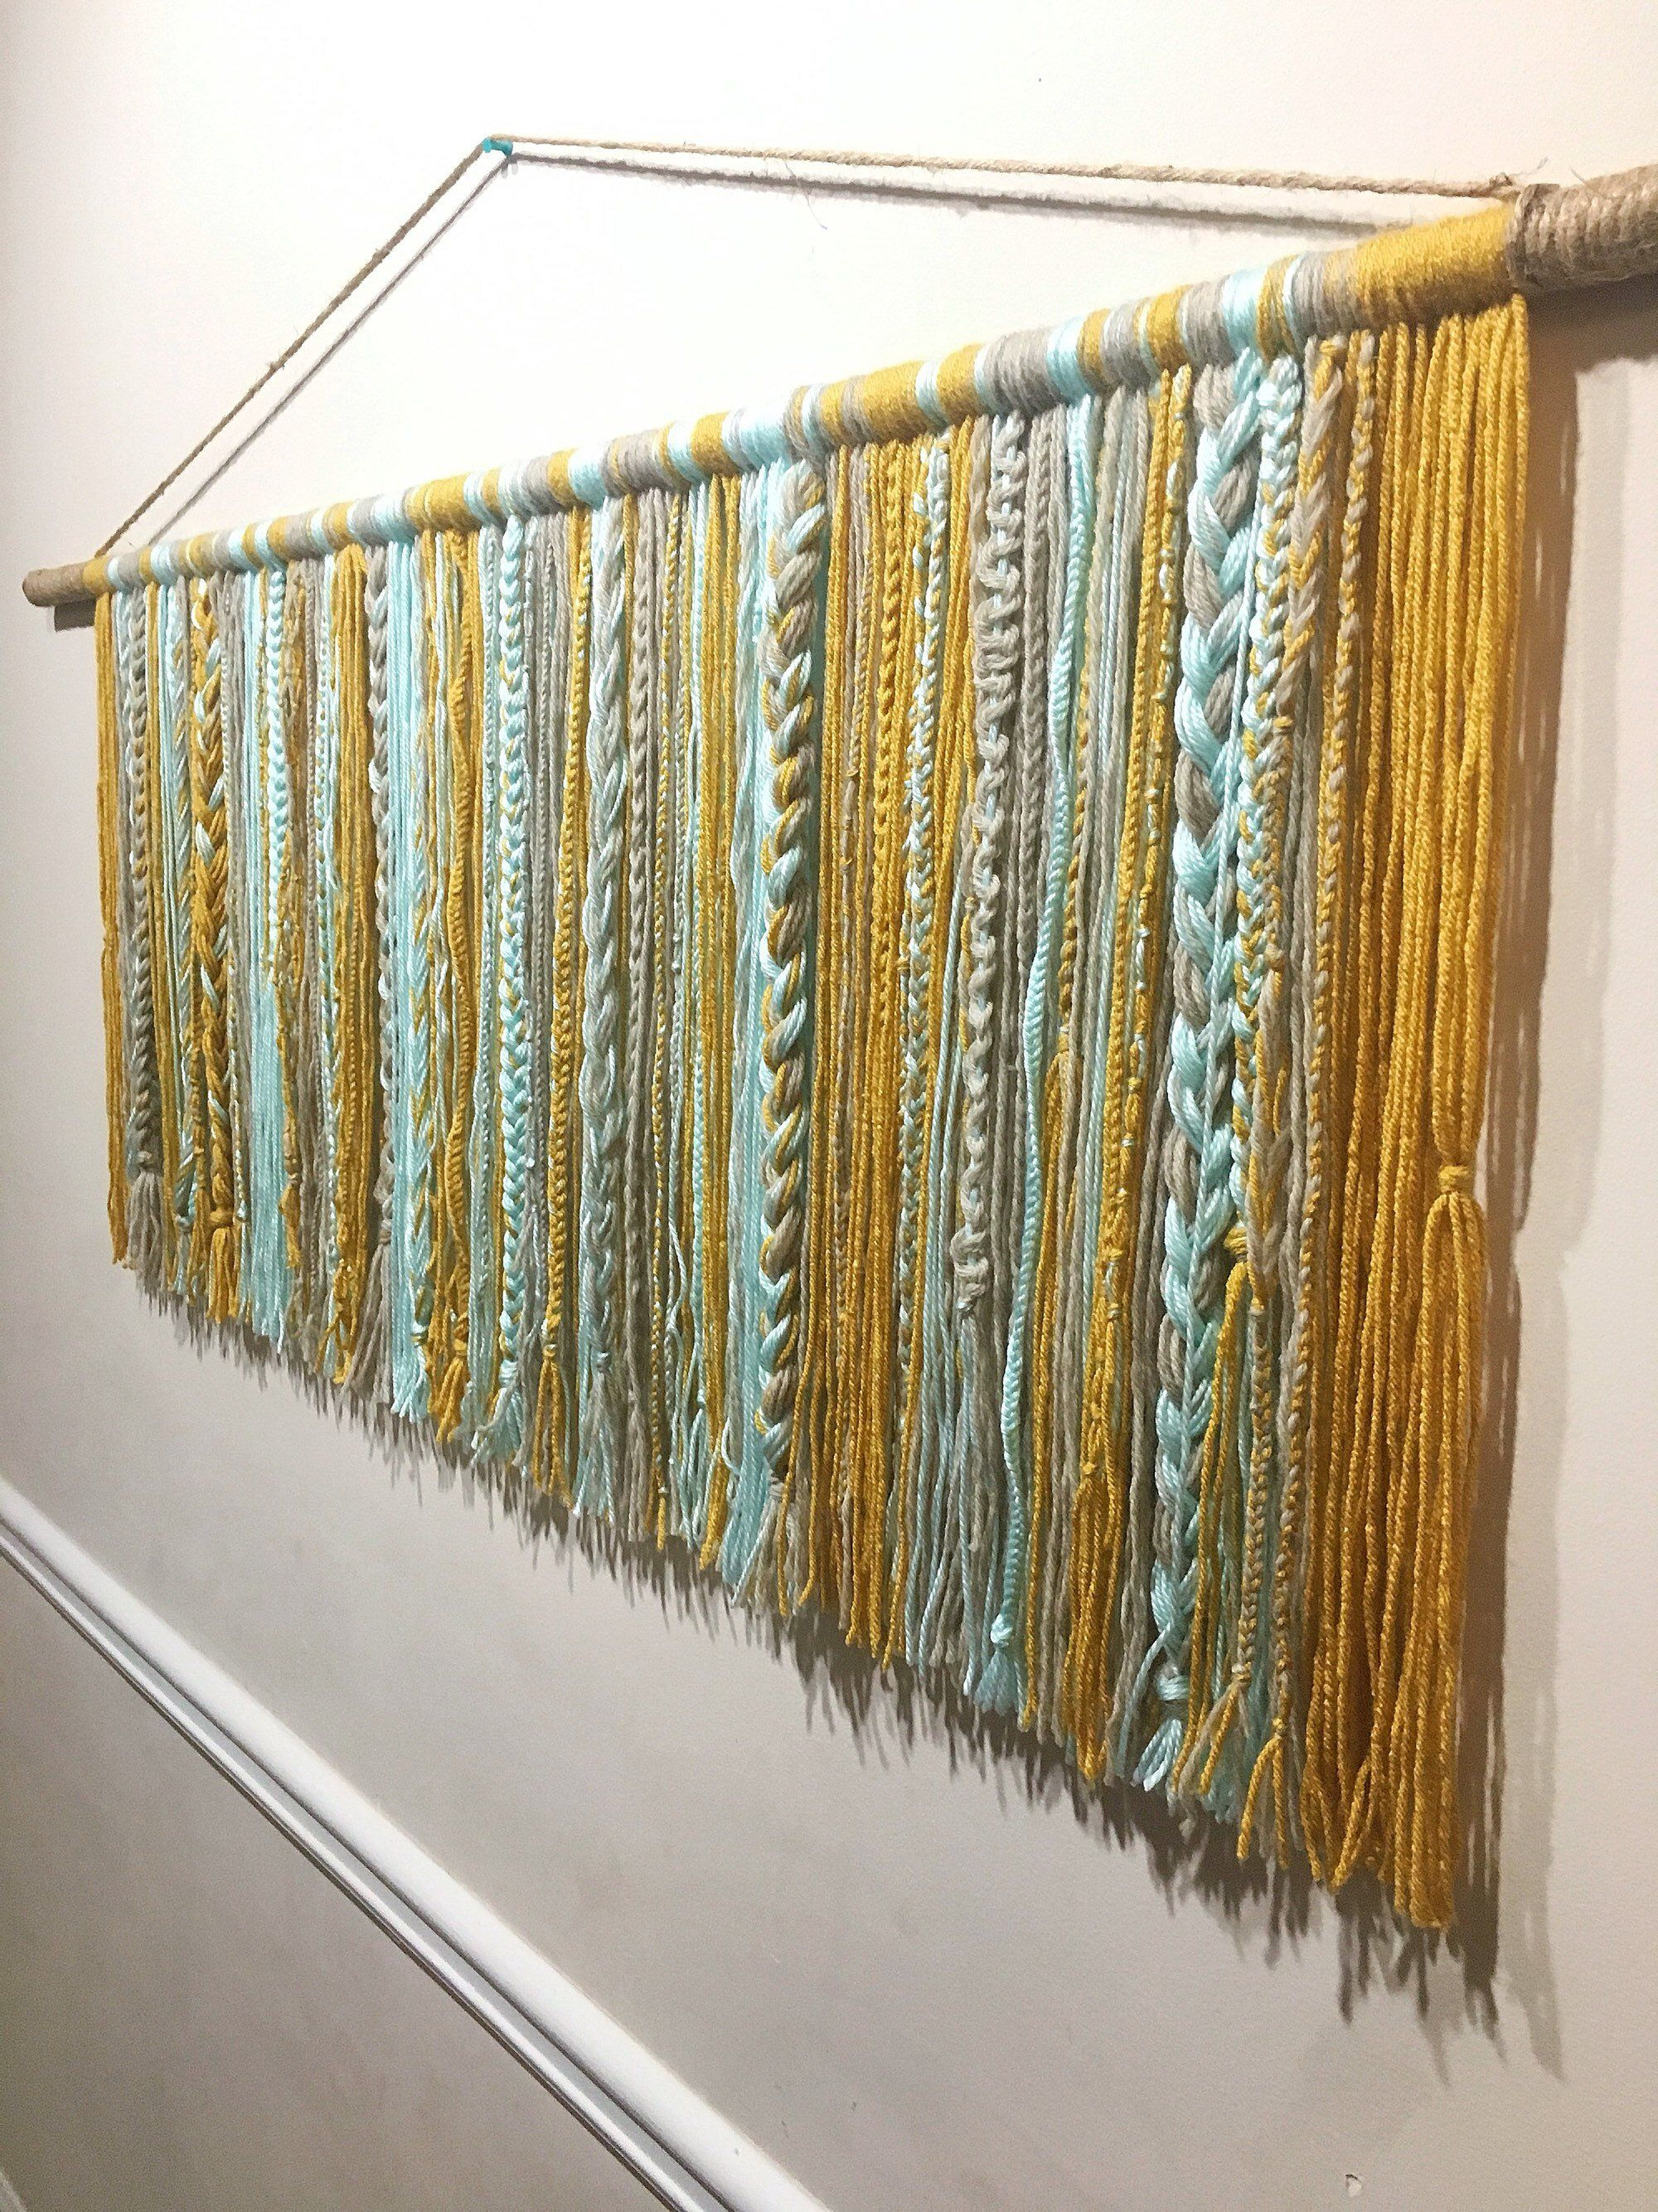 Braided Yarn Wall Hanging Large Teal Mustard Yellow And Etsy Yarn Wall Hanging Yarn Wall Art Yarn Hanging